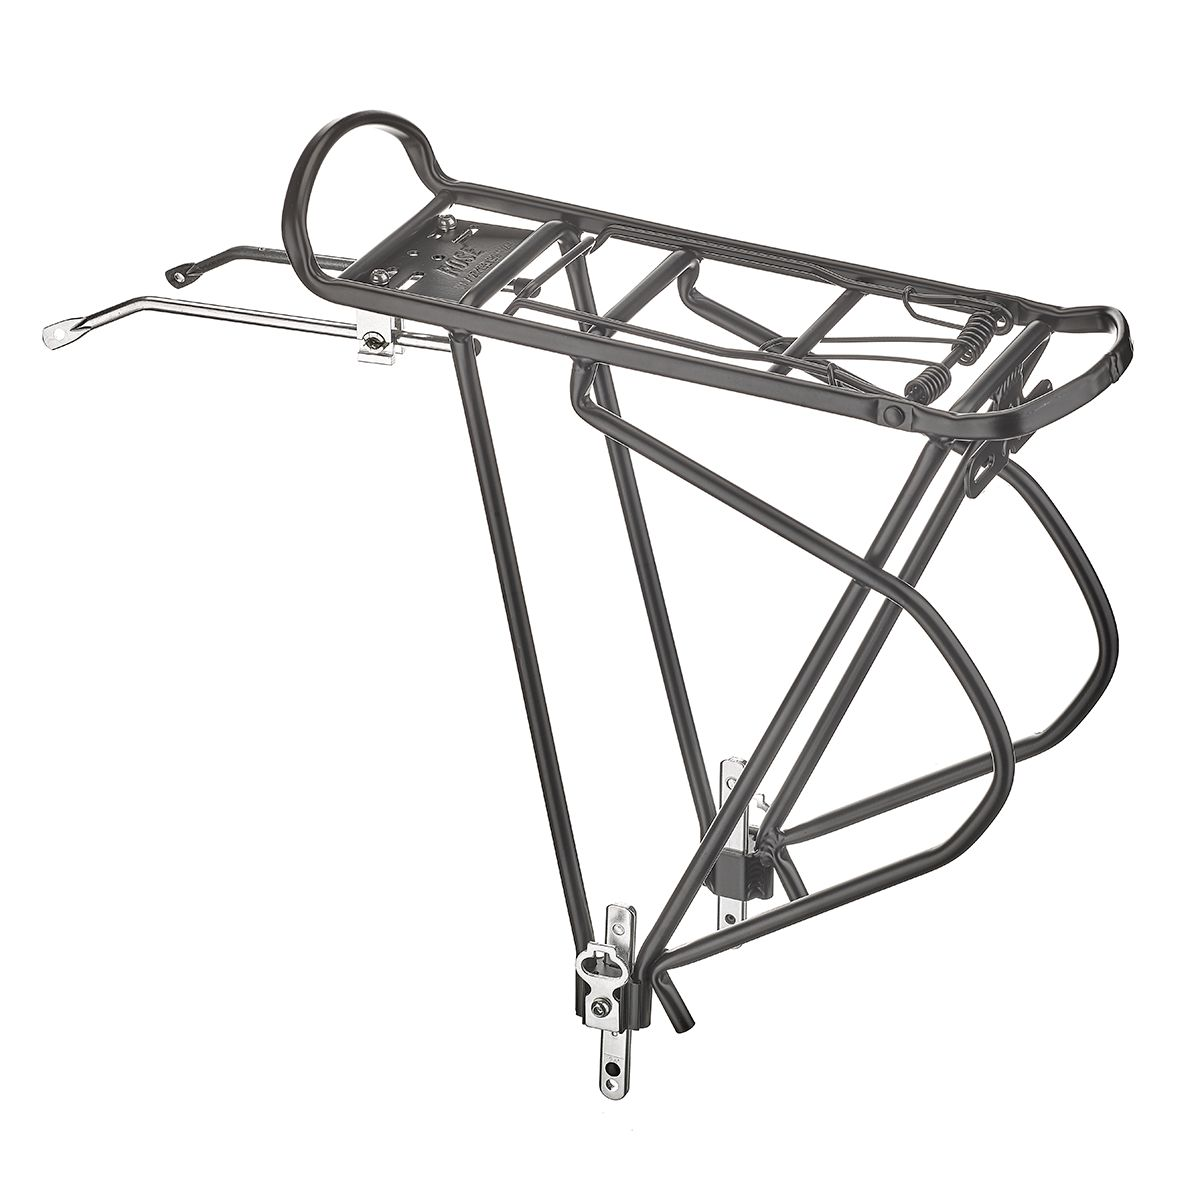 Squaretube Alloy Rear Rack